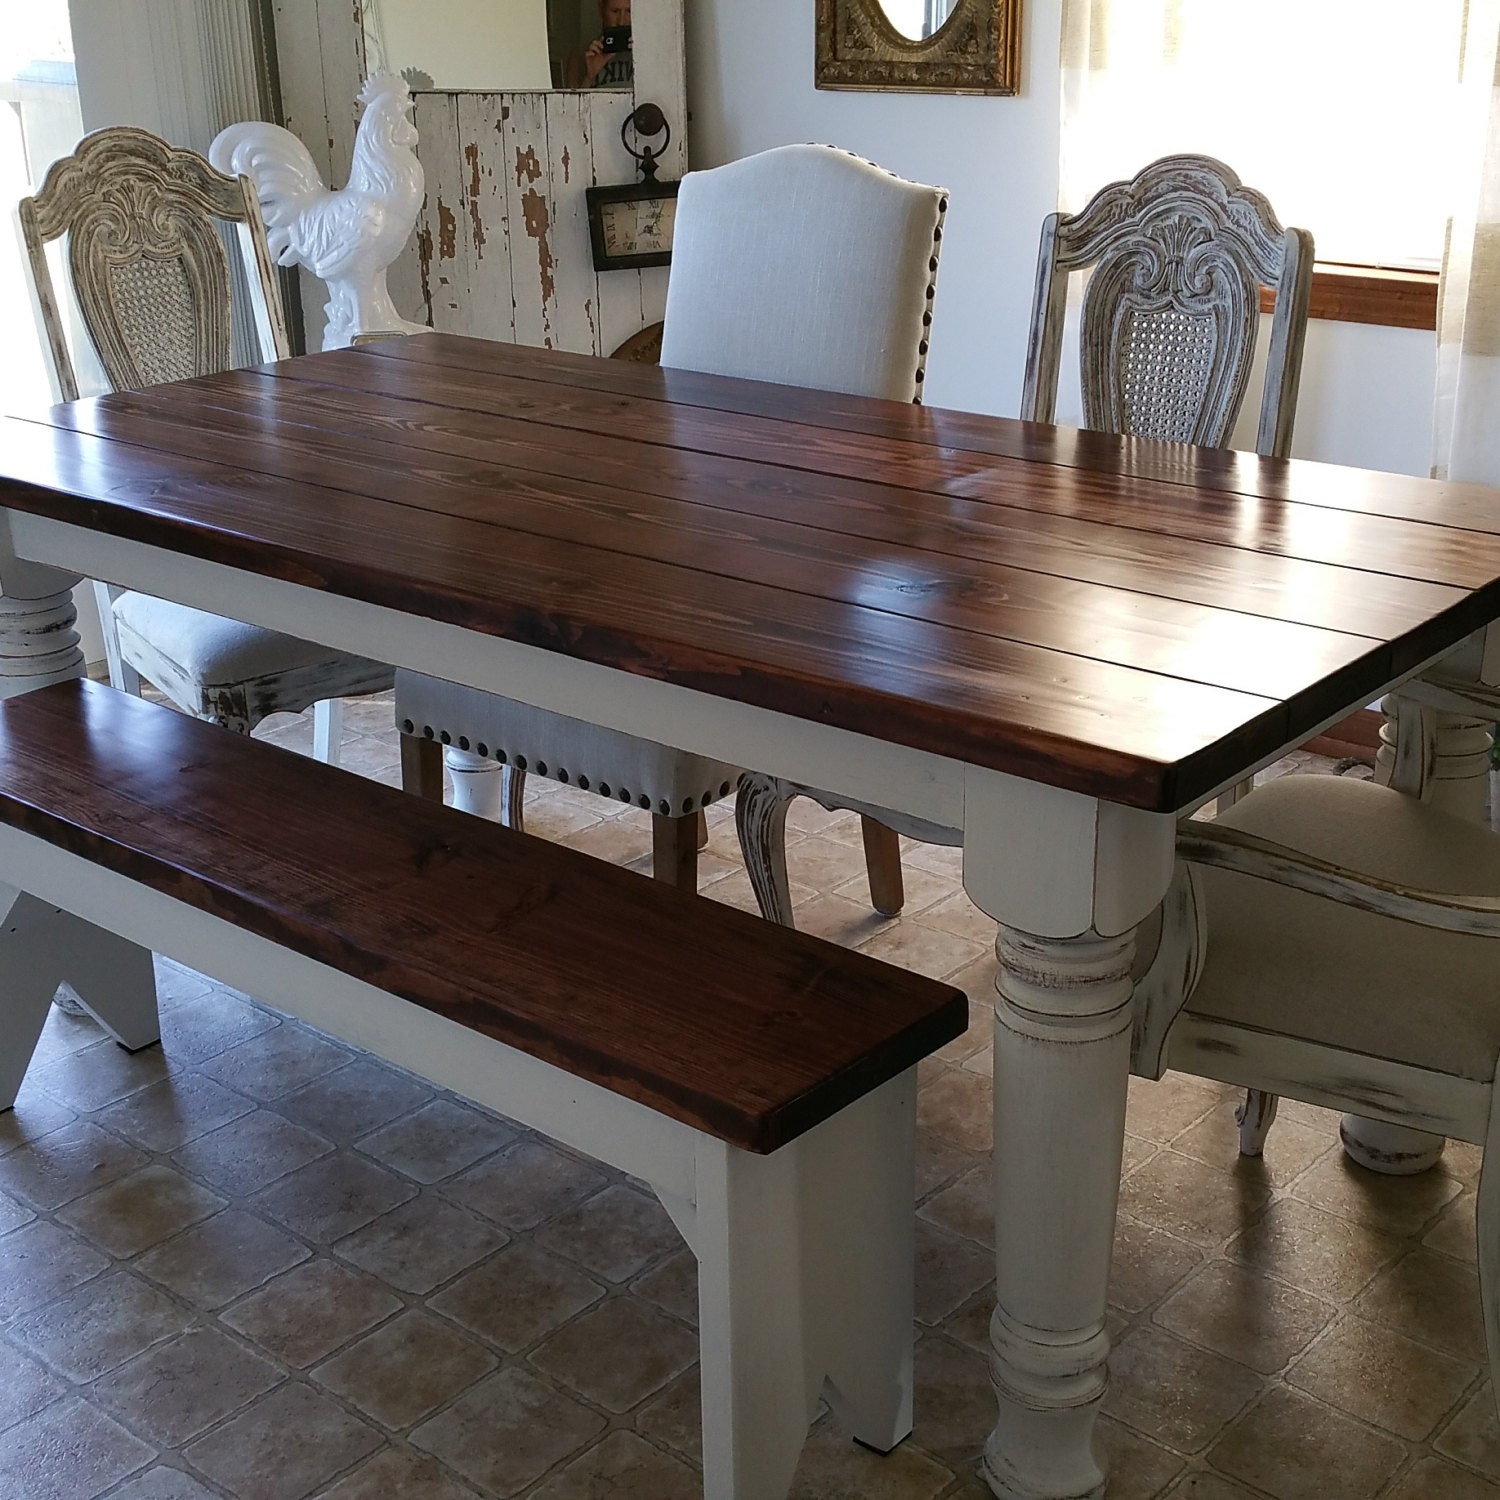 Dining Tables Benches: Farmhouse Dining Table With Bench